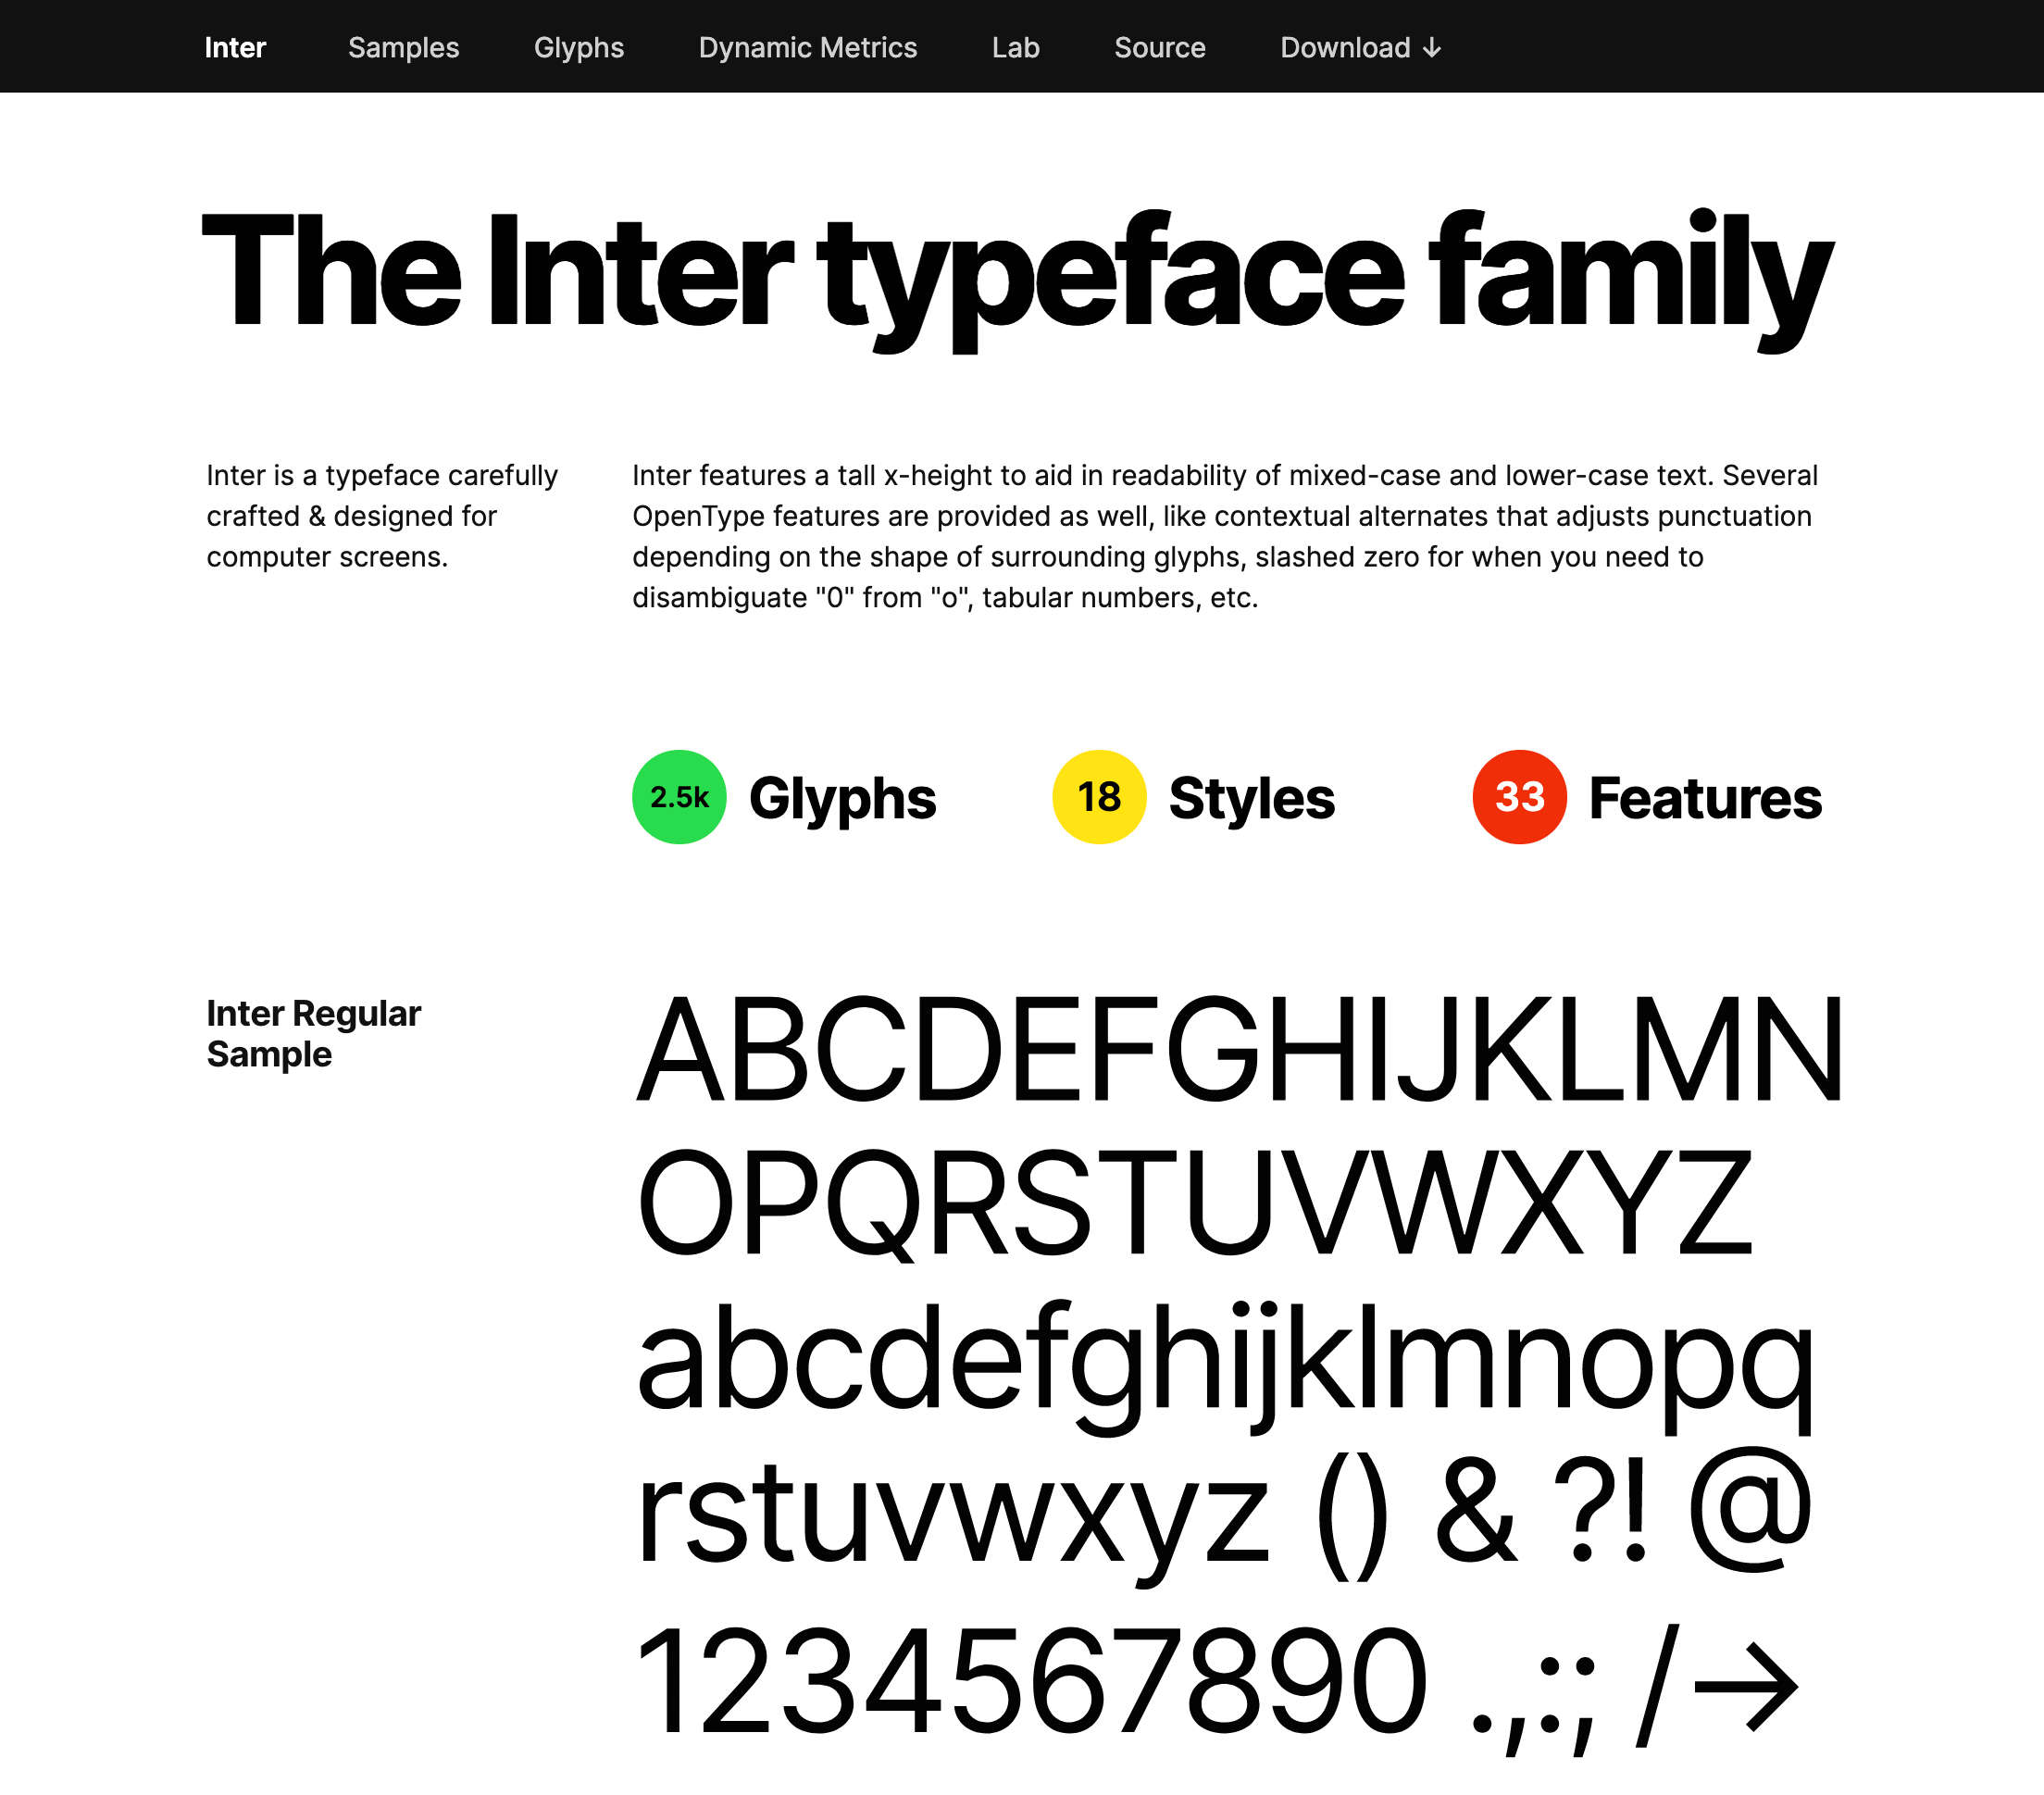 Inter typeface